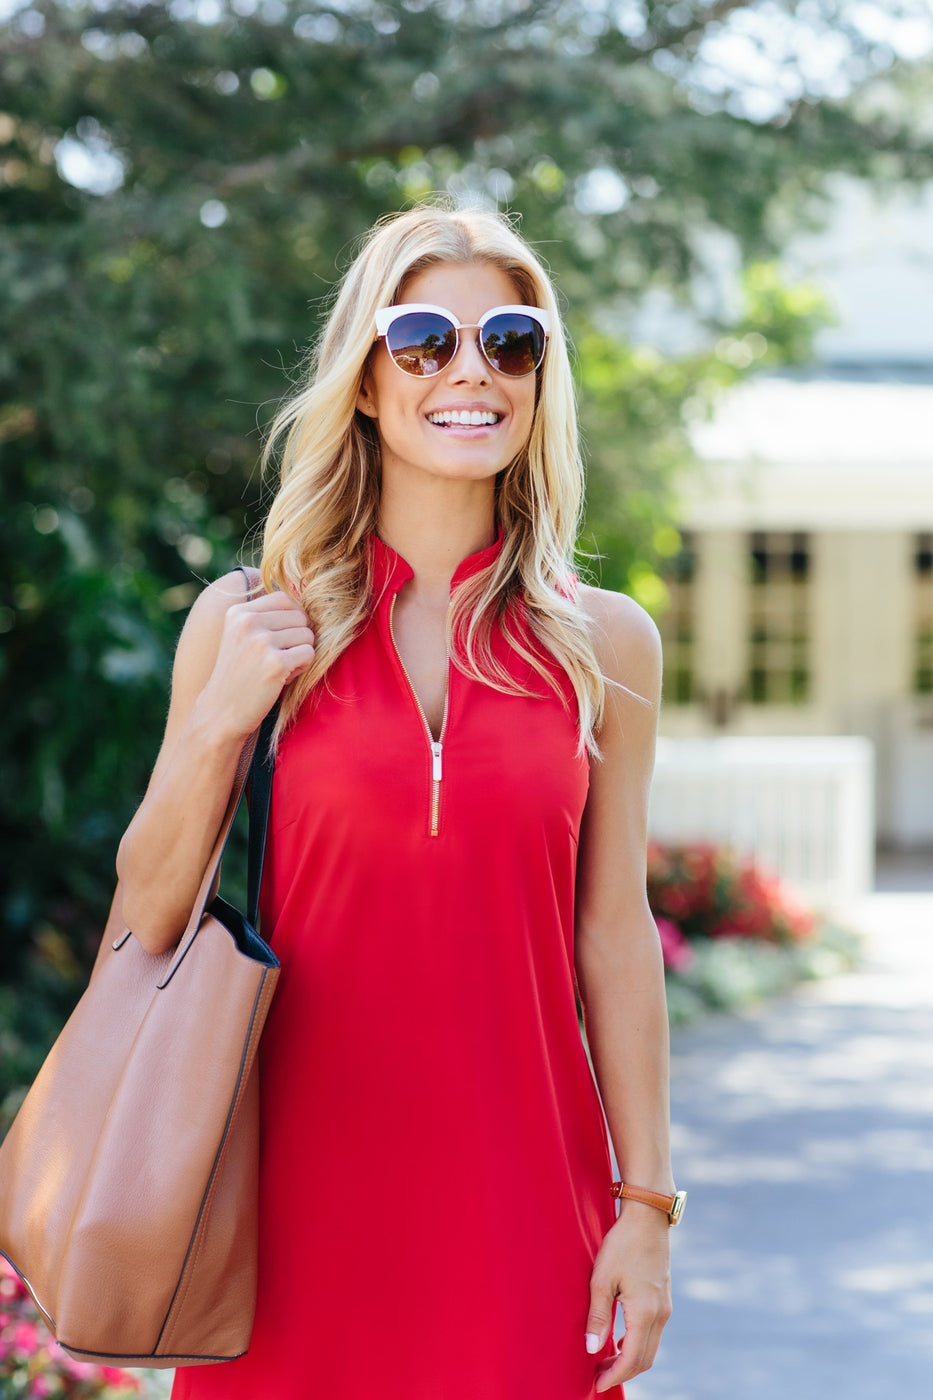 petite dress in red for golf or evening